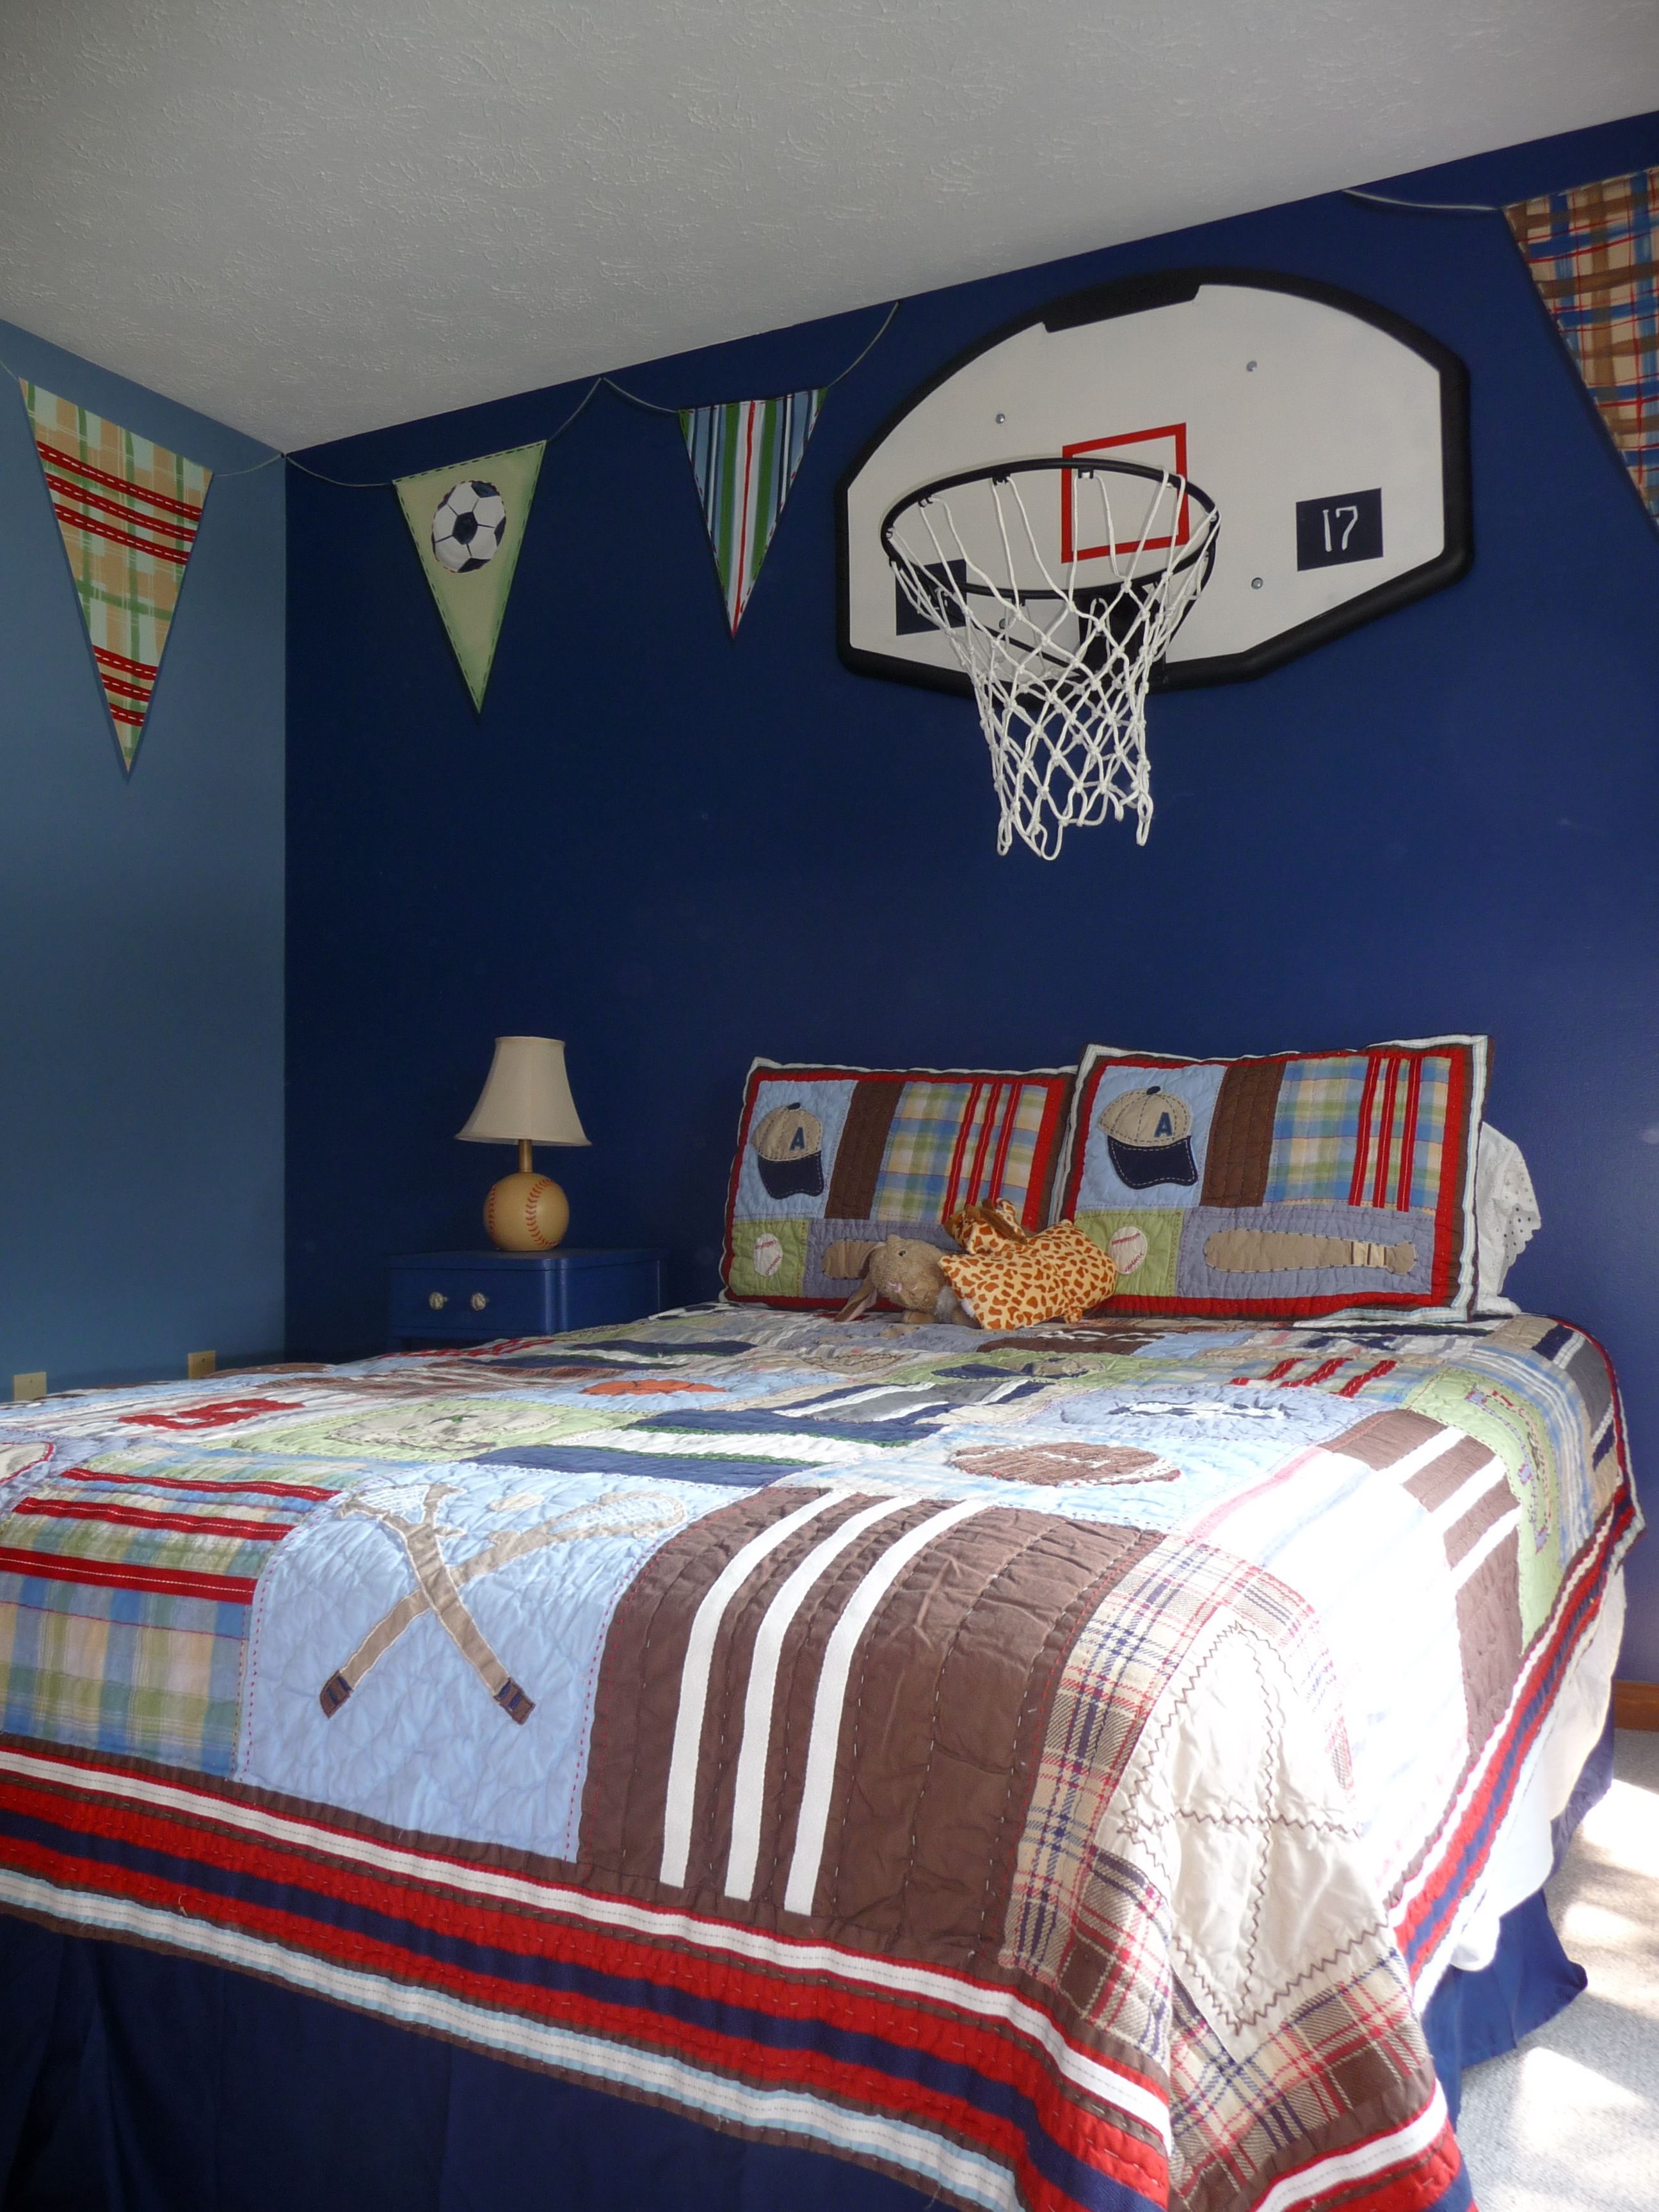 Lovely Basketball Goal Over The Bed Is So Happening....or Mini Goal Posts? Hmmmm